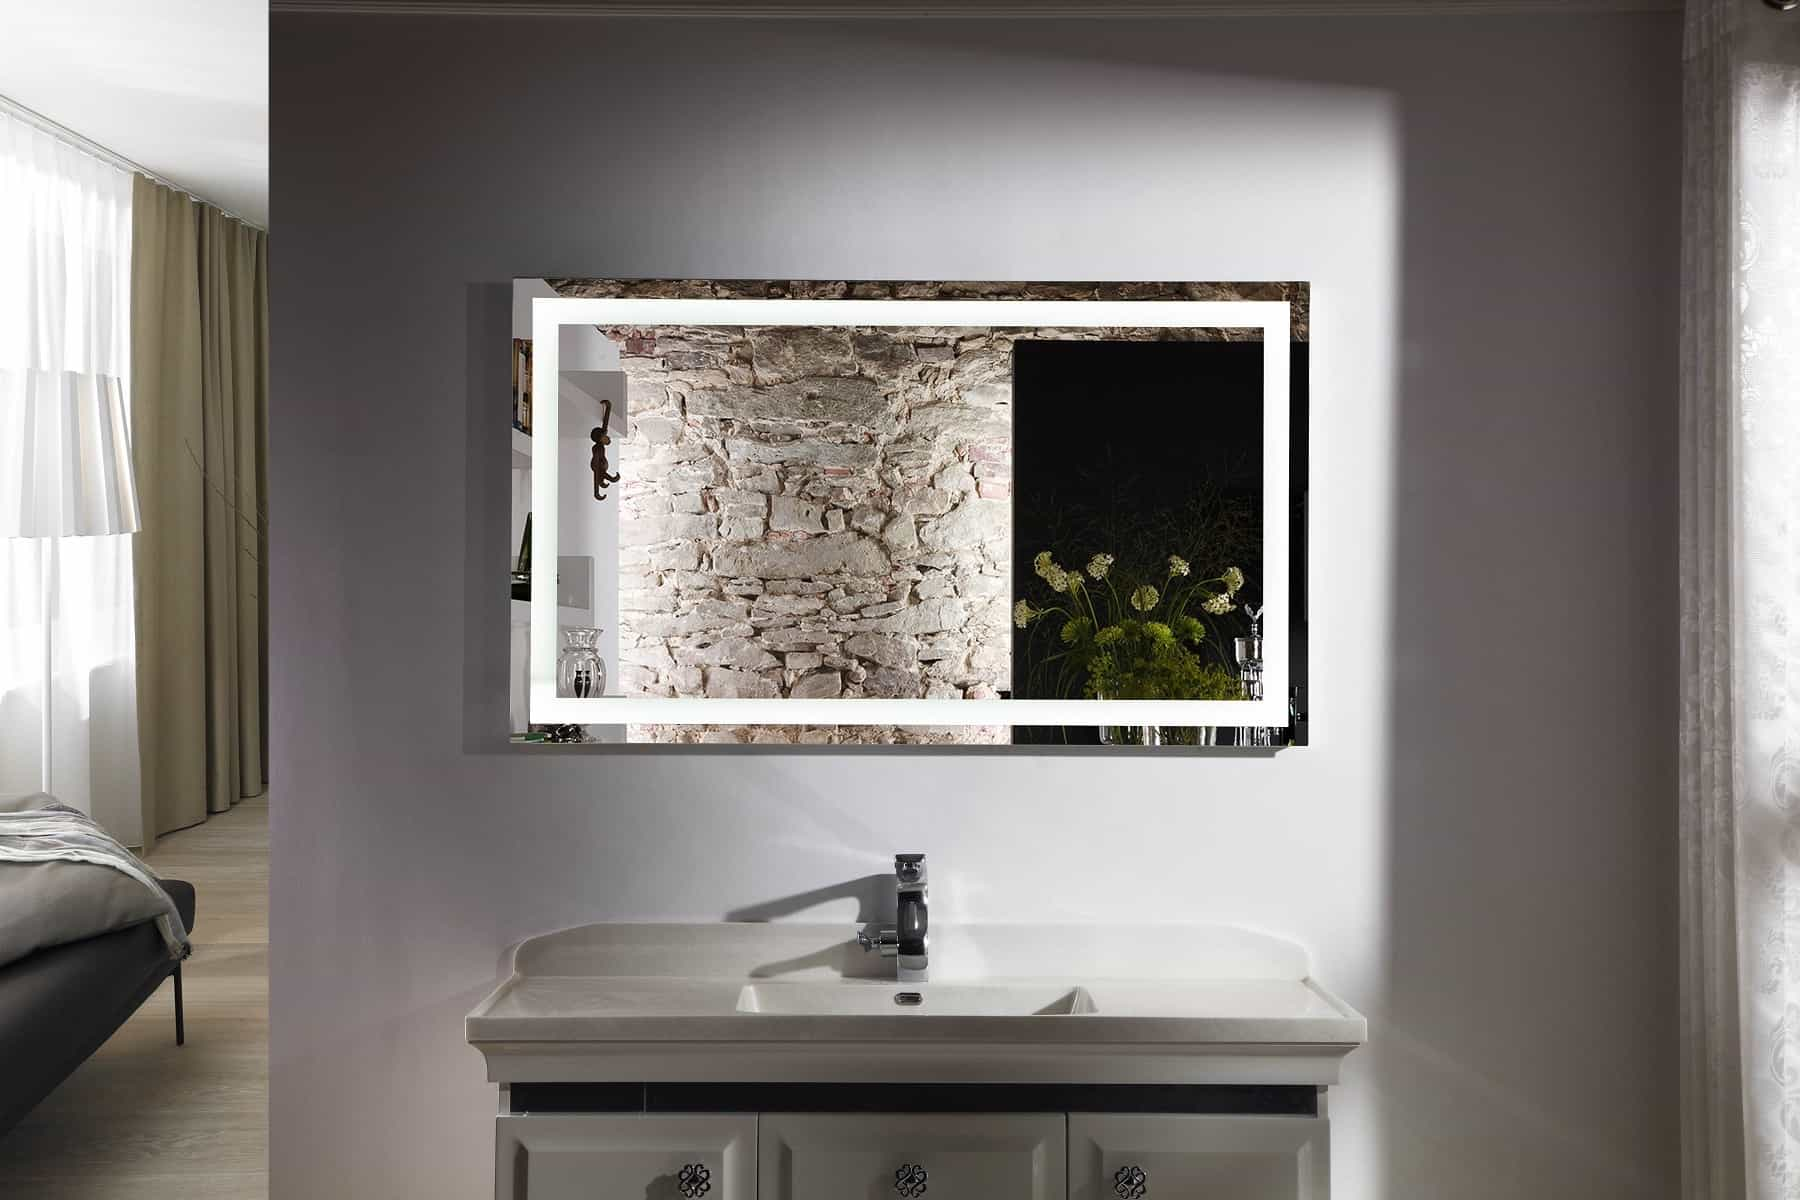 Illuminated Magnifying Bathroom Mirrors (View 7 of 8)